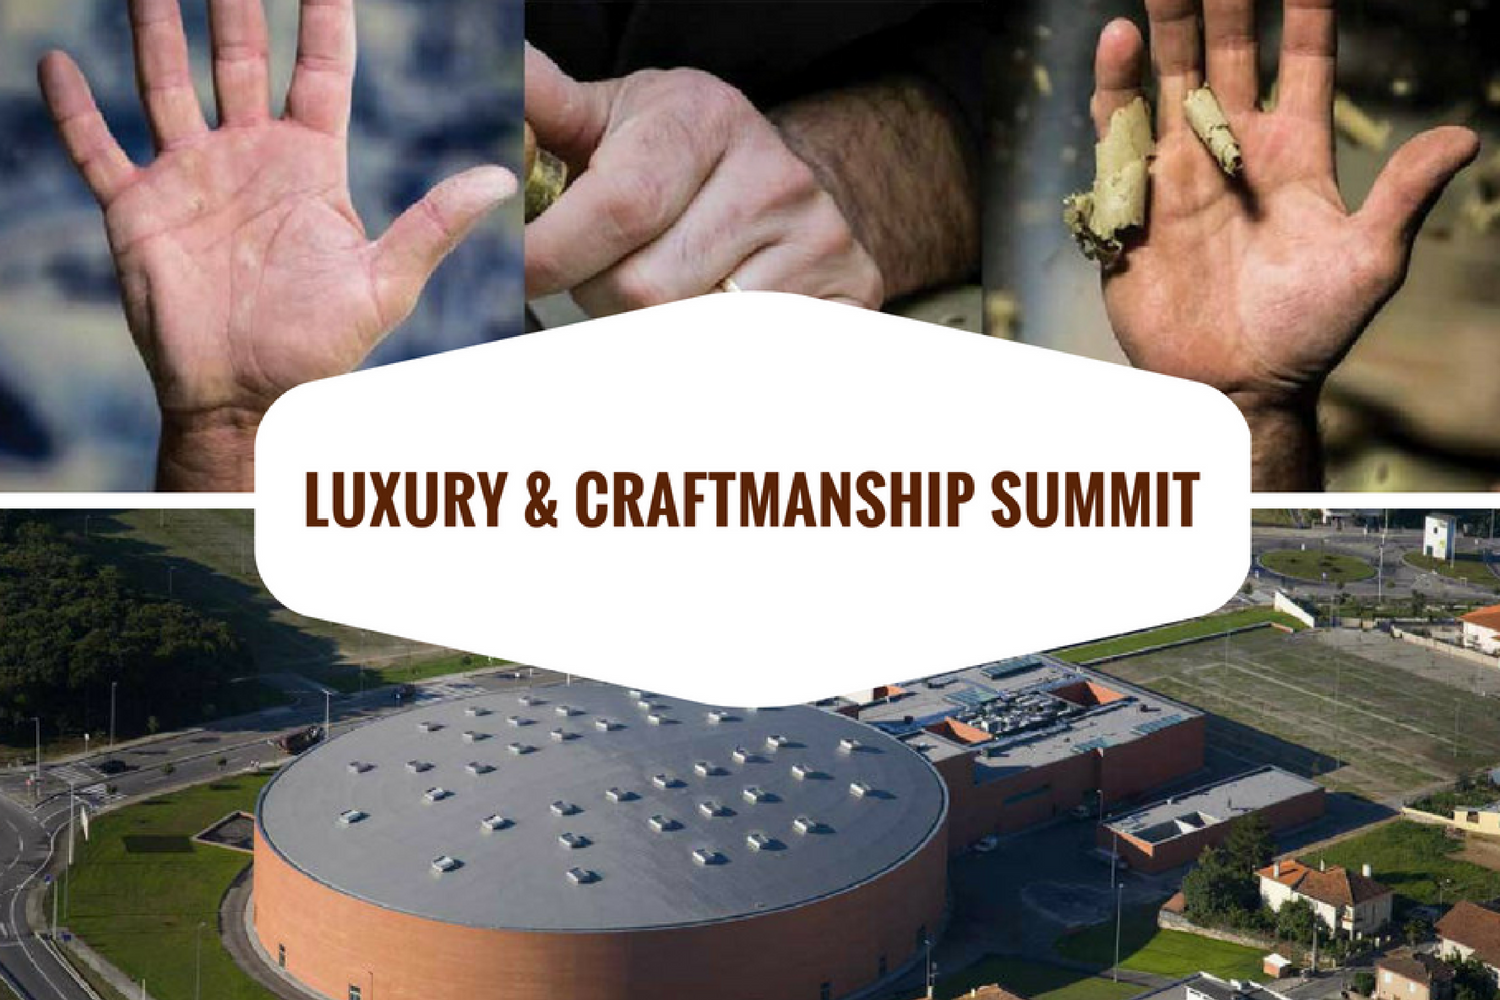 All To Know About The Luxury Design And Craftsmanship Summit 2018 Luxury Design And Craftsmanship Summit 2018 All To Know About The Luxury Design And Craftsmanship Summit 2018 All To Know About The Luxury Design And Craftsmanship Summit 2018